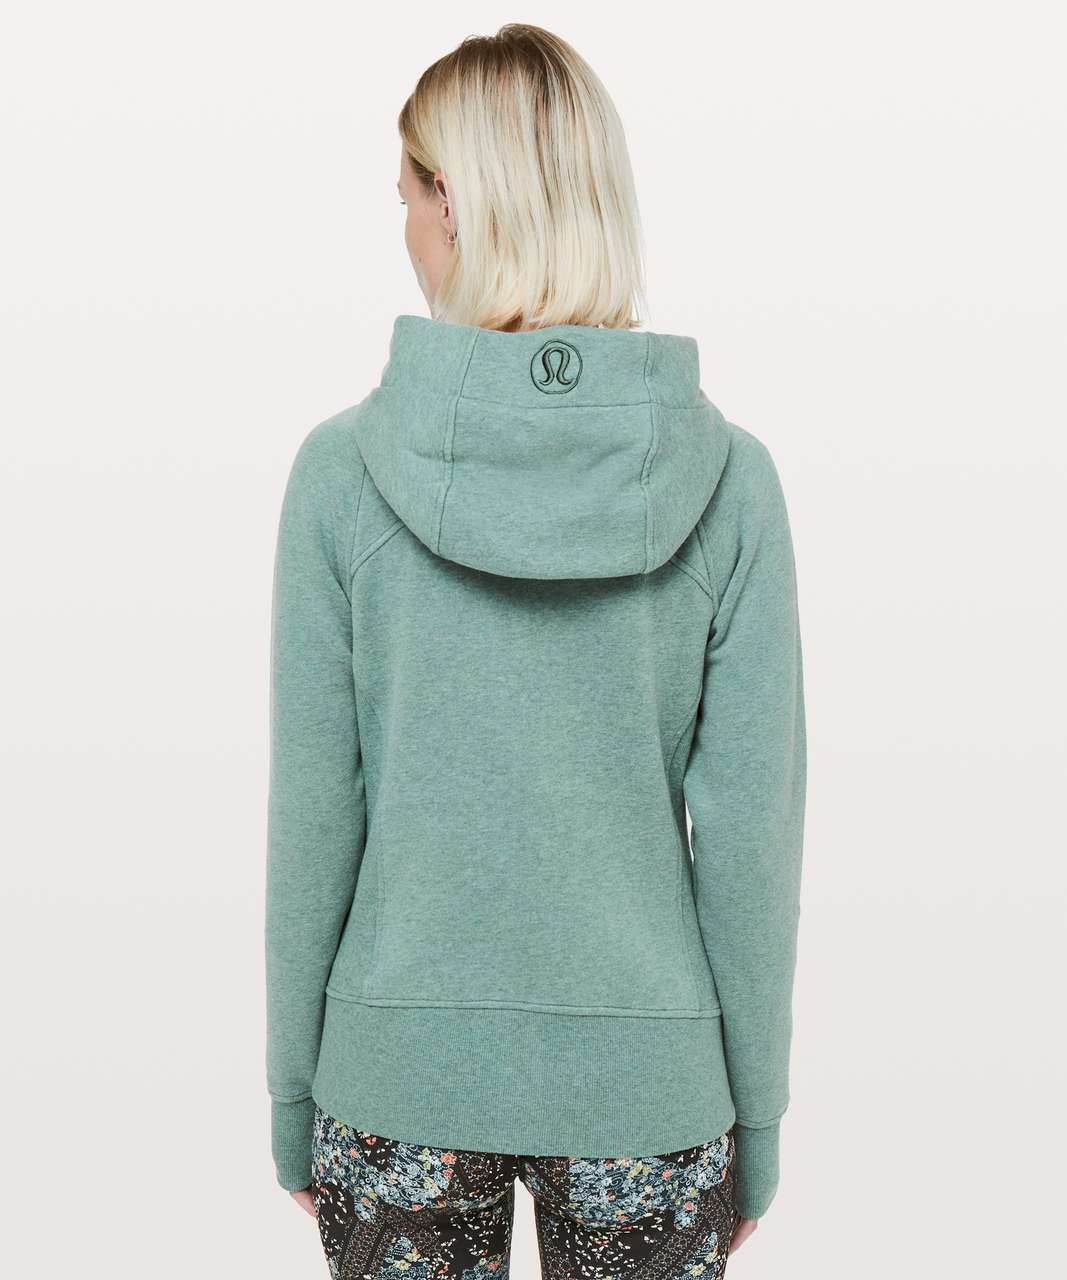 Lululemon Scuba Hoodie *Light Cotton Fleece - Heathered Green Smoke